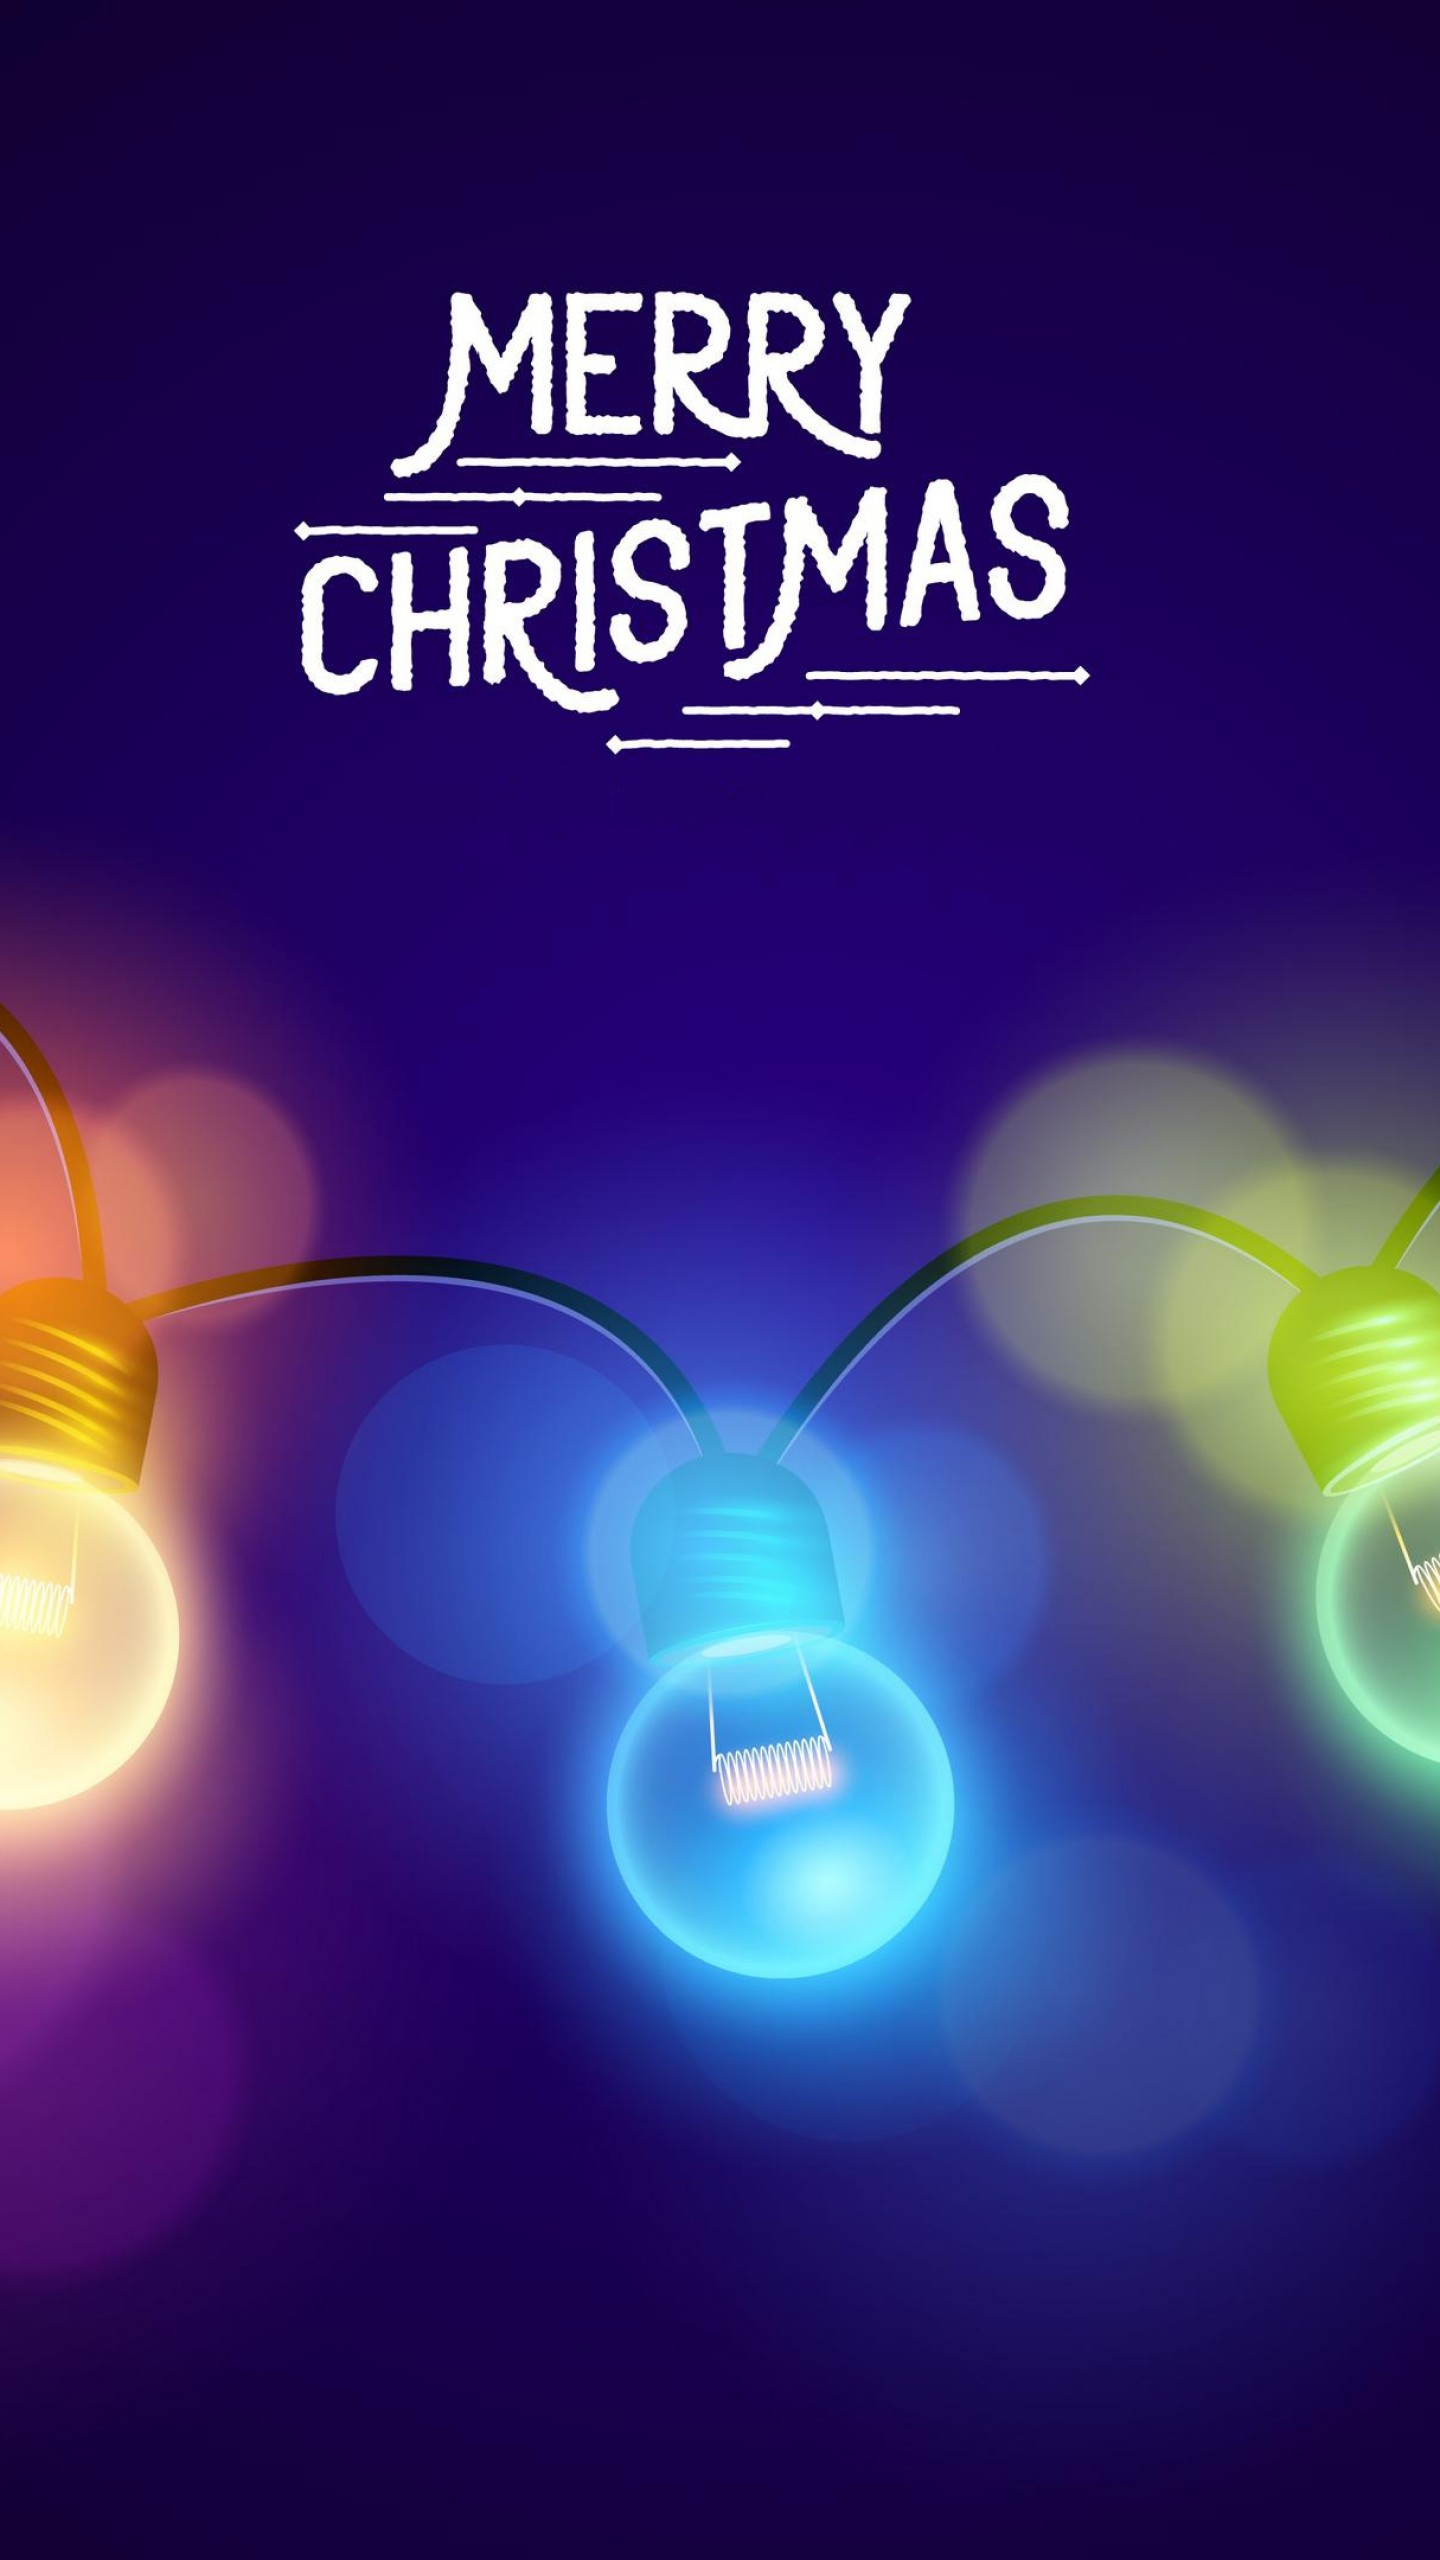 Merry Christmas Lights iPhone Wallpaper